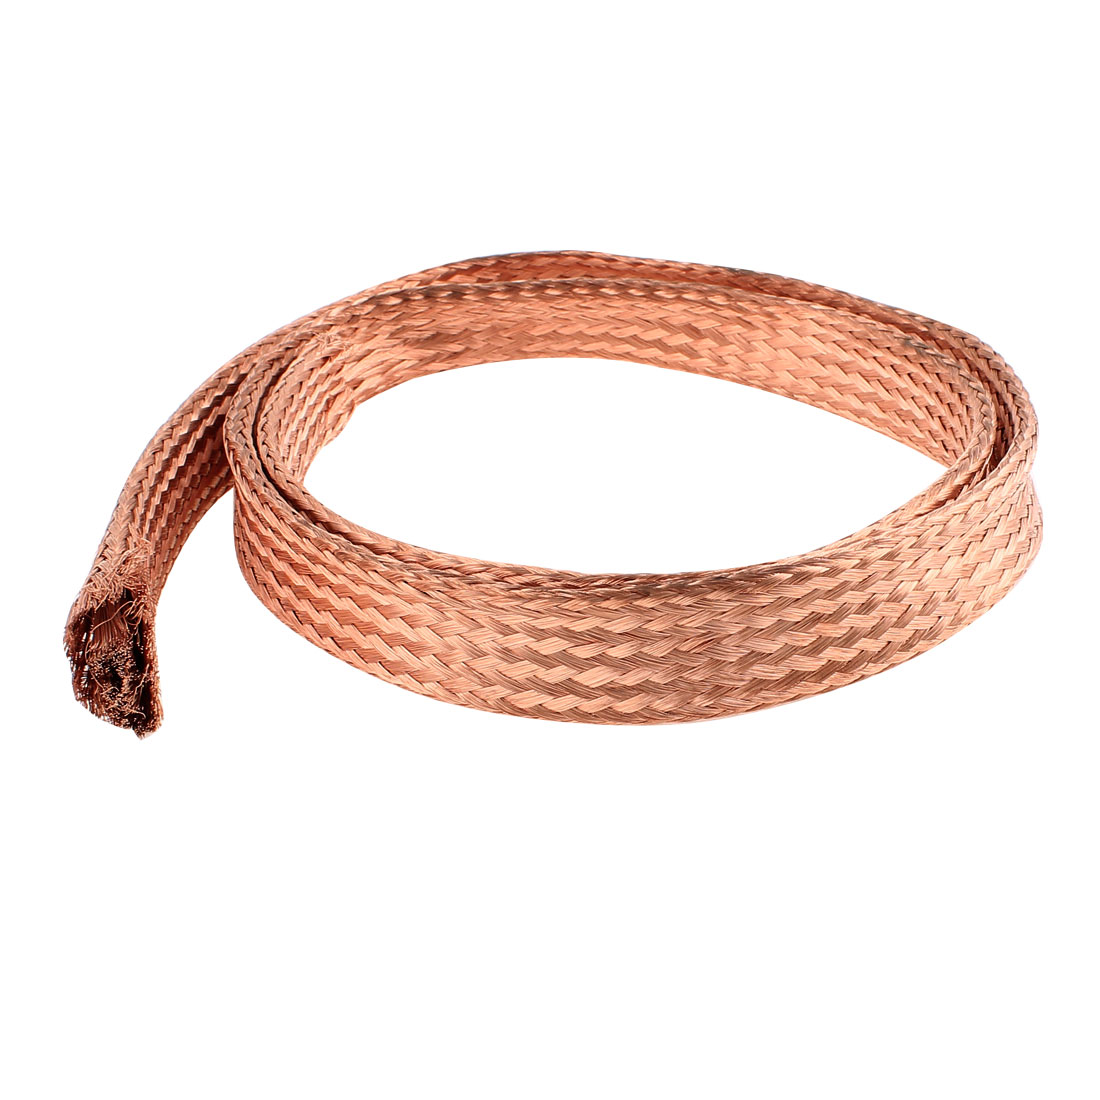 35 Square Millimeter Thickness 1M Length Flat Electrical Bare Braided Copper Wire